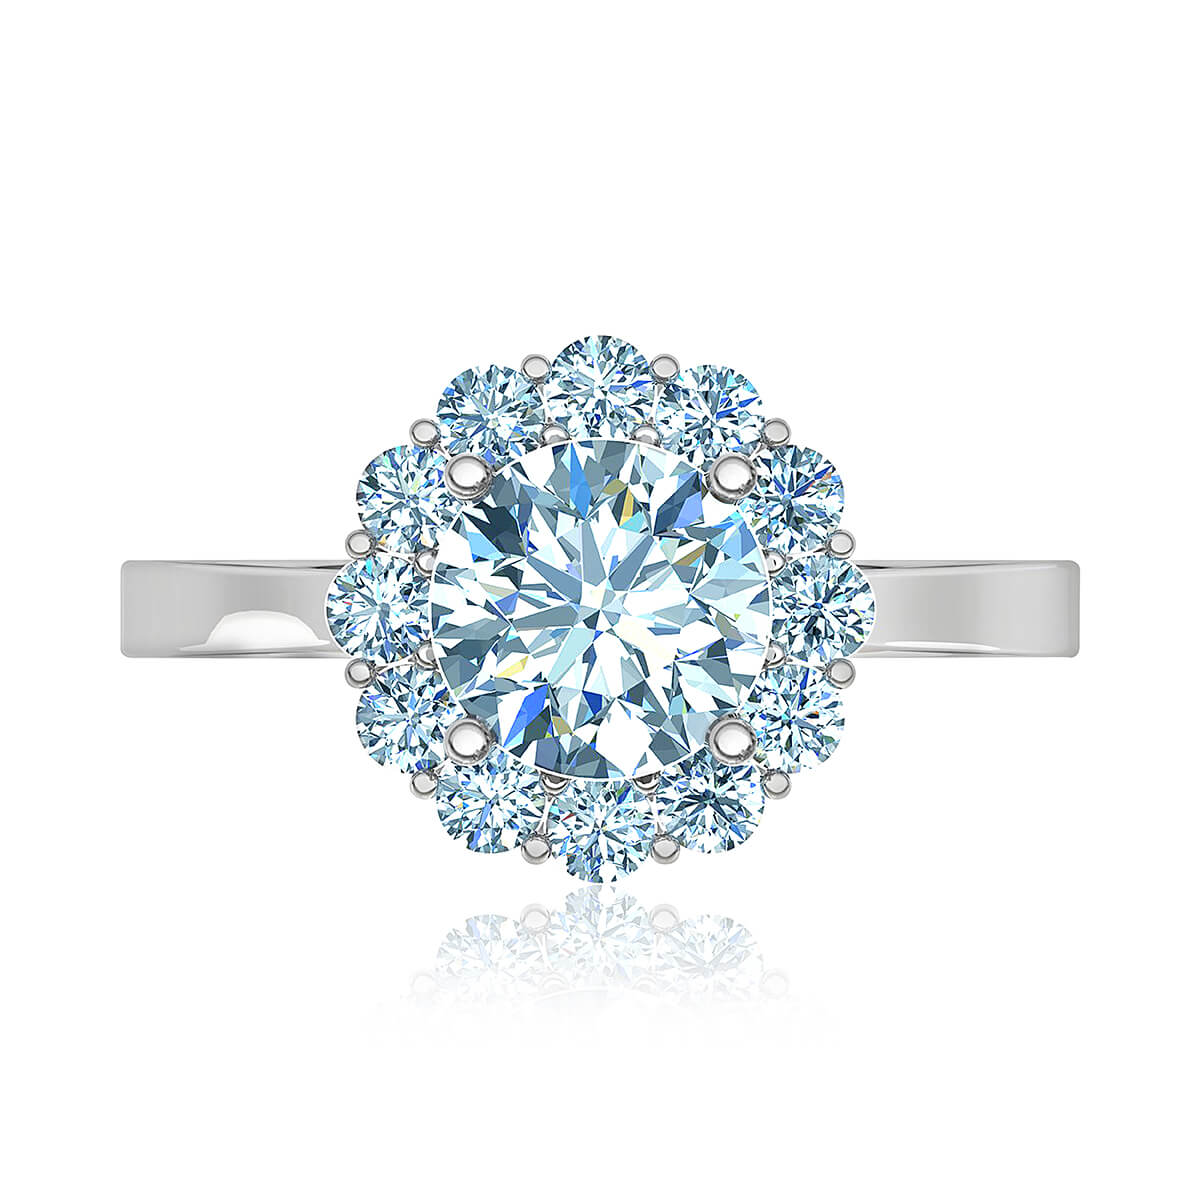 Tuscany Halo Diamond Ring